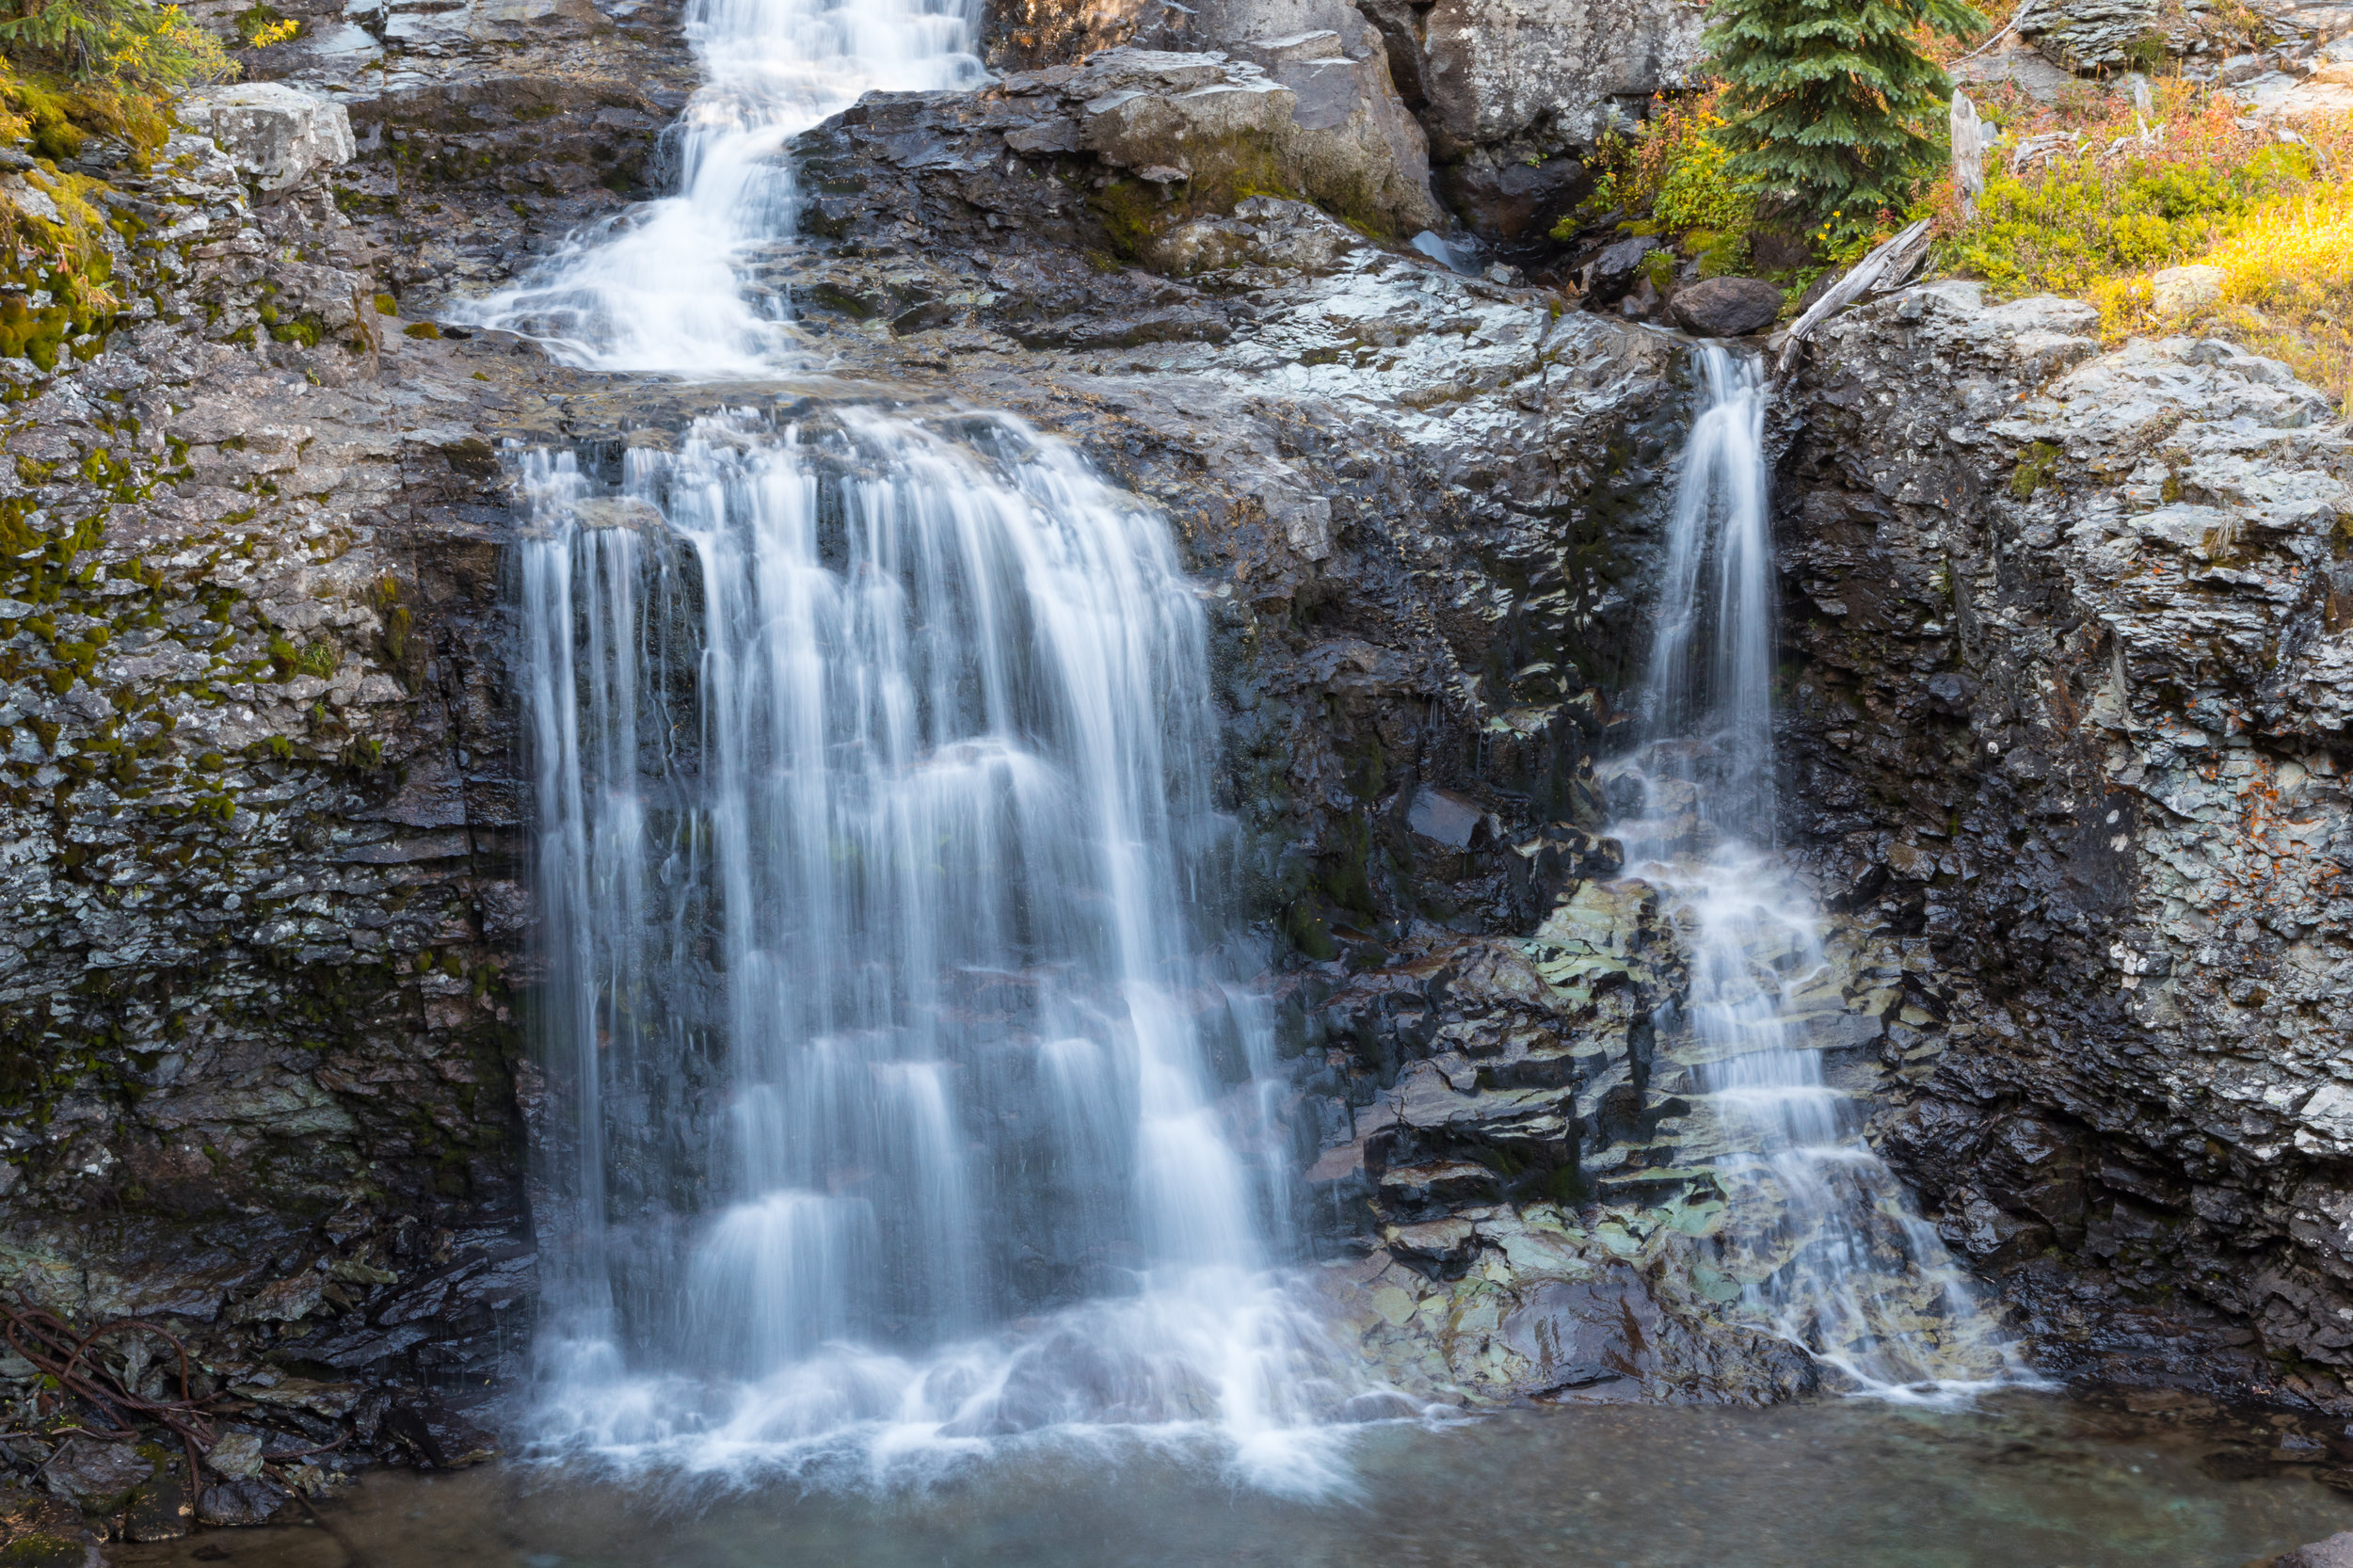 Waterfall Along the trail to Lewis Mill, Image # 1955